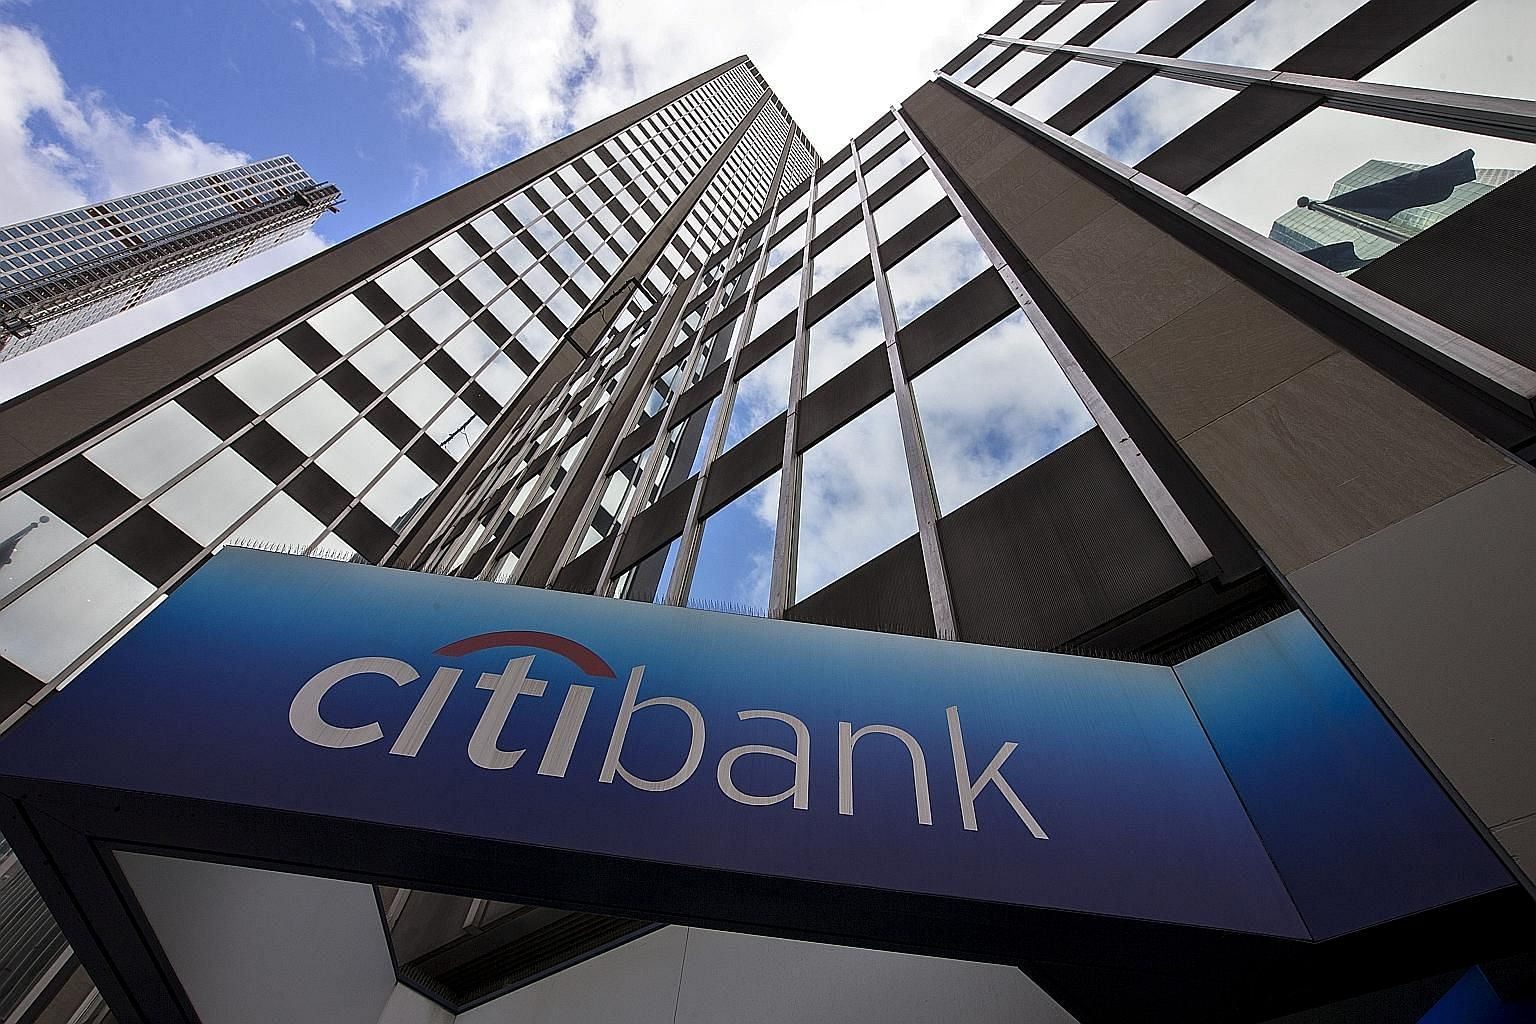 Citigroup's foreign exchange trading engine in Singapore will include a proprietary pricing and hedging algorithm. The platform, which is slated to go live in the fourth quarter, will also allow trading in gold and silver.